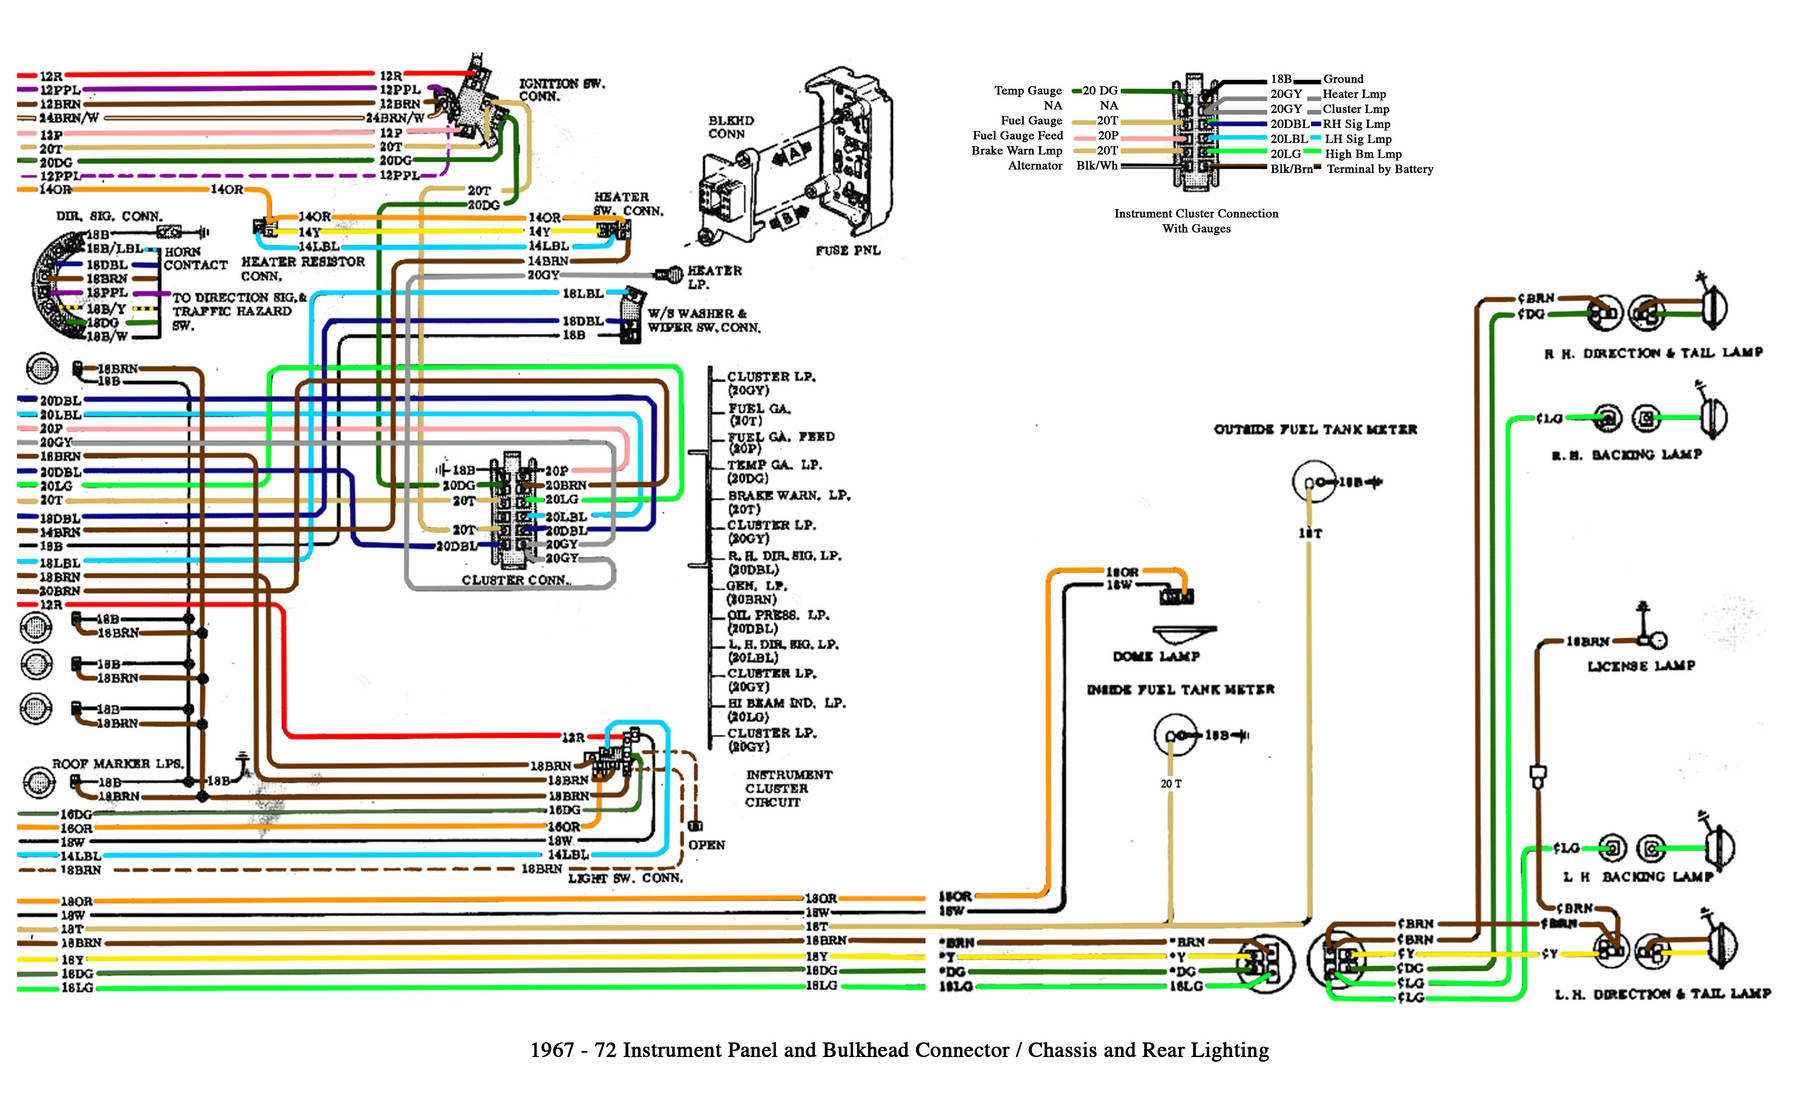 2004 Chevy Silverado Radio Wiring Harness Diagram Unique 2003 - 2004 Chevy Silverado Radio Wiring Harness Diagram